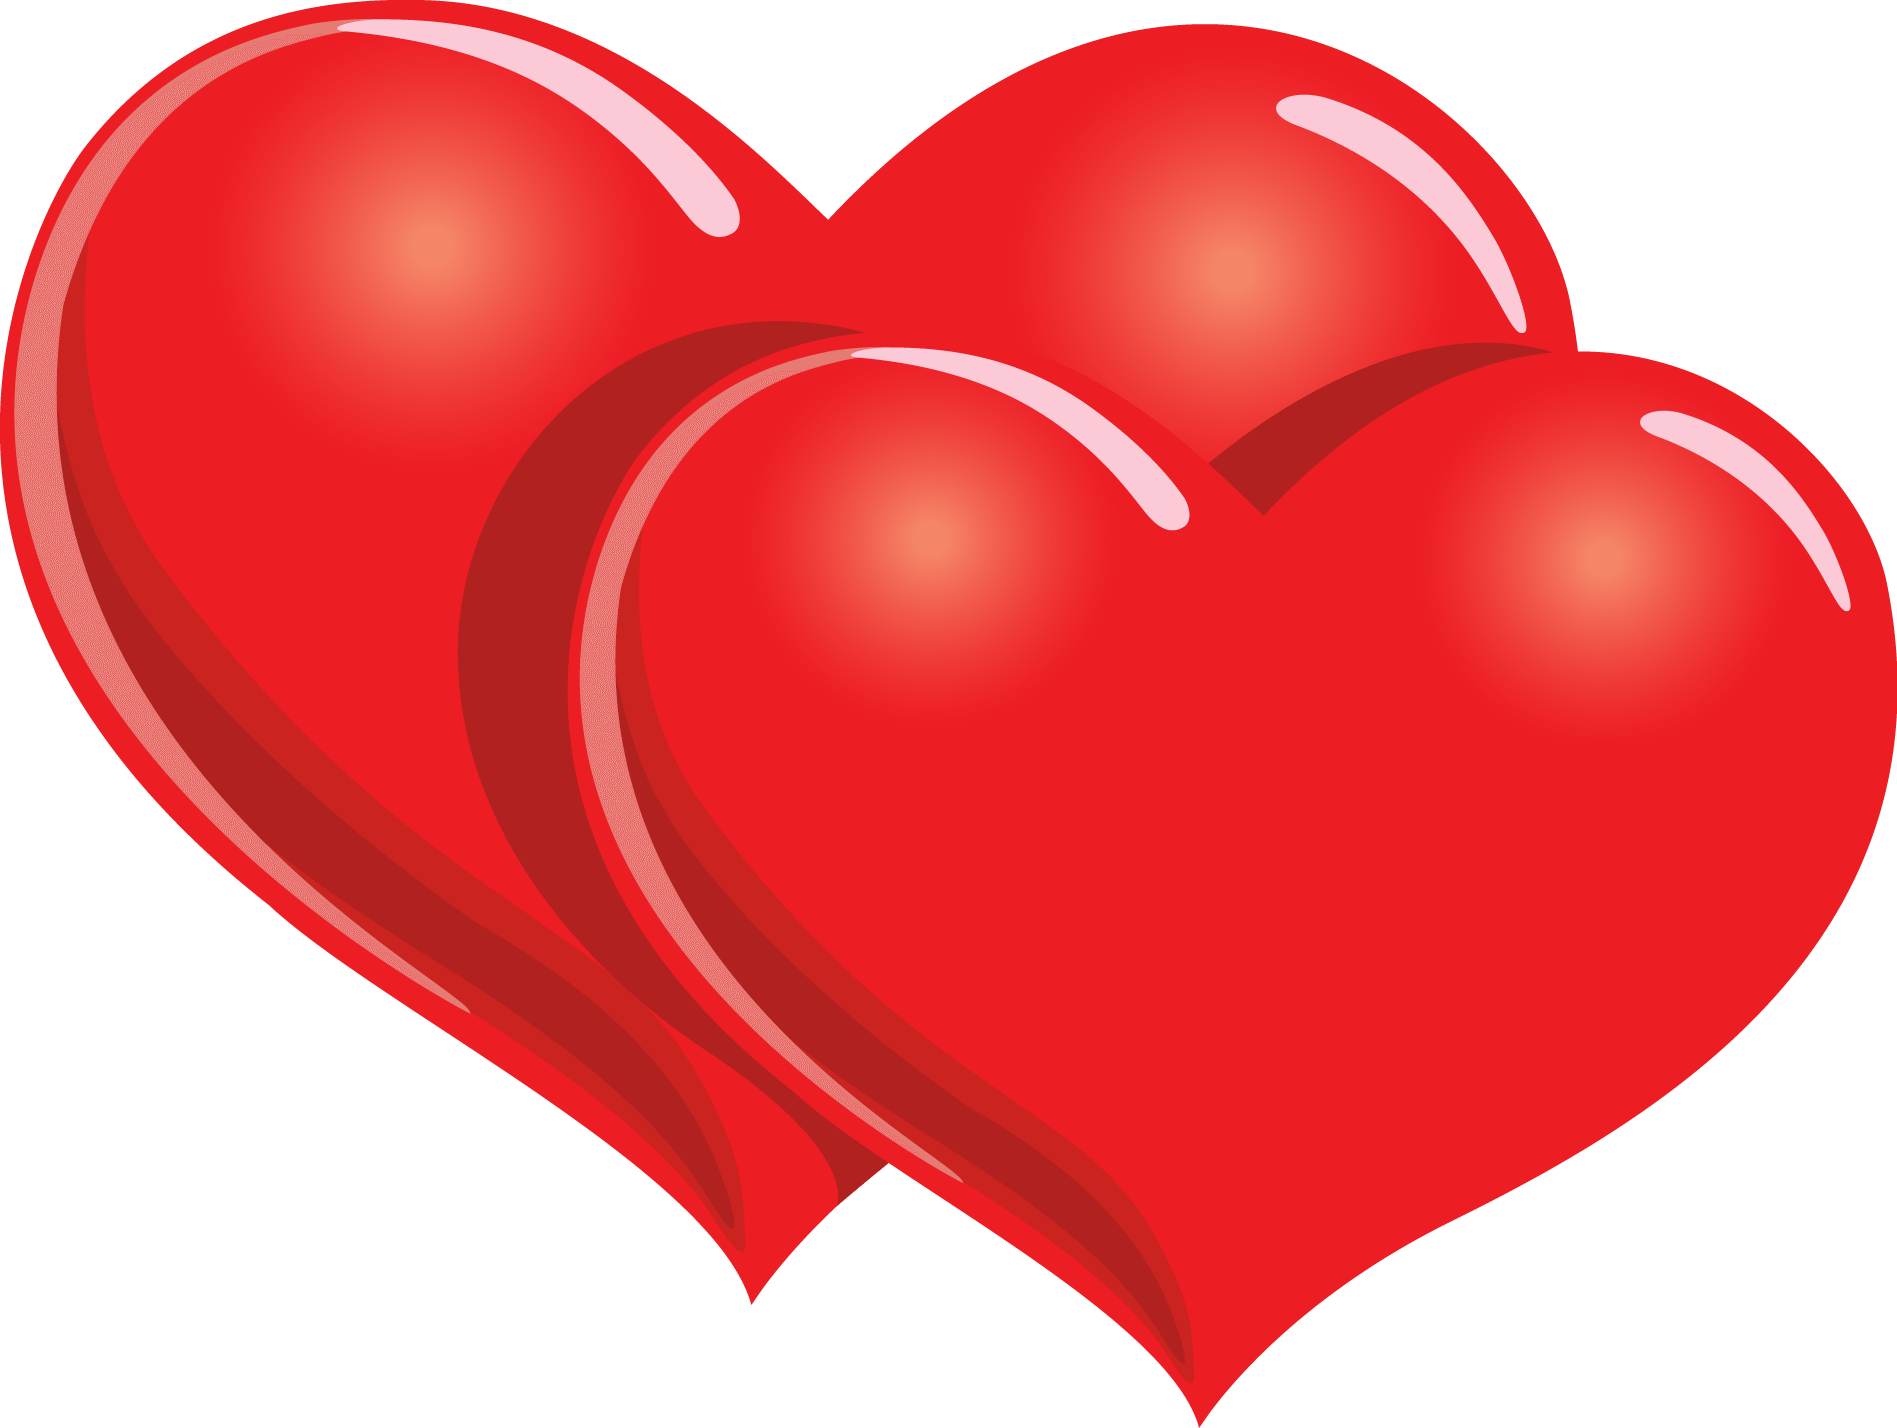 Happy two hearts transparent. Valentines day heart png svg free stock